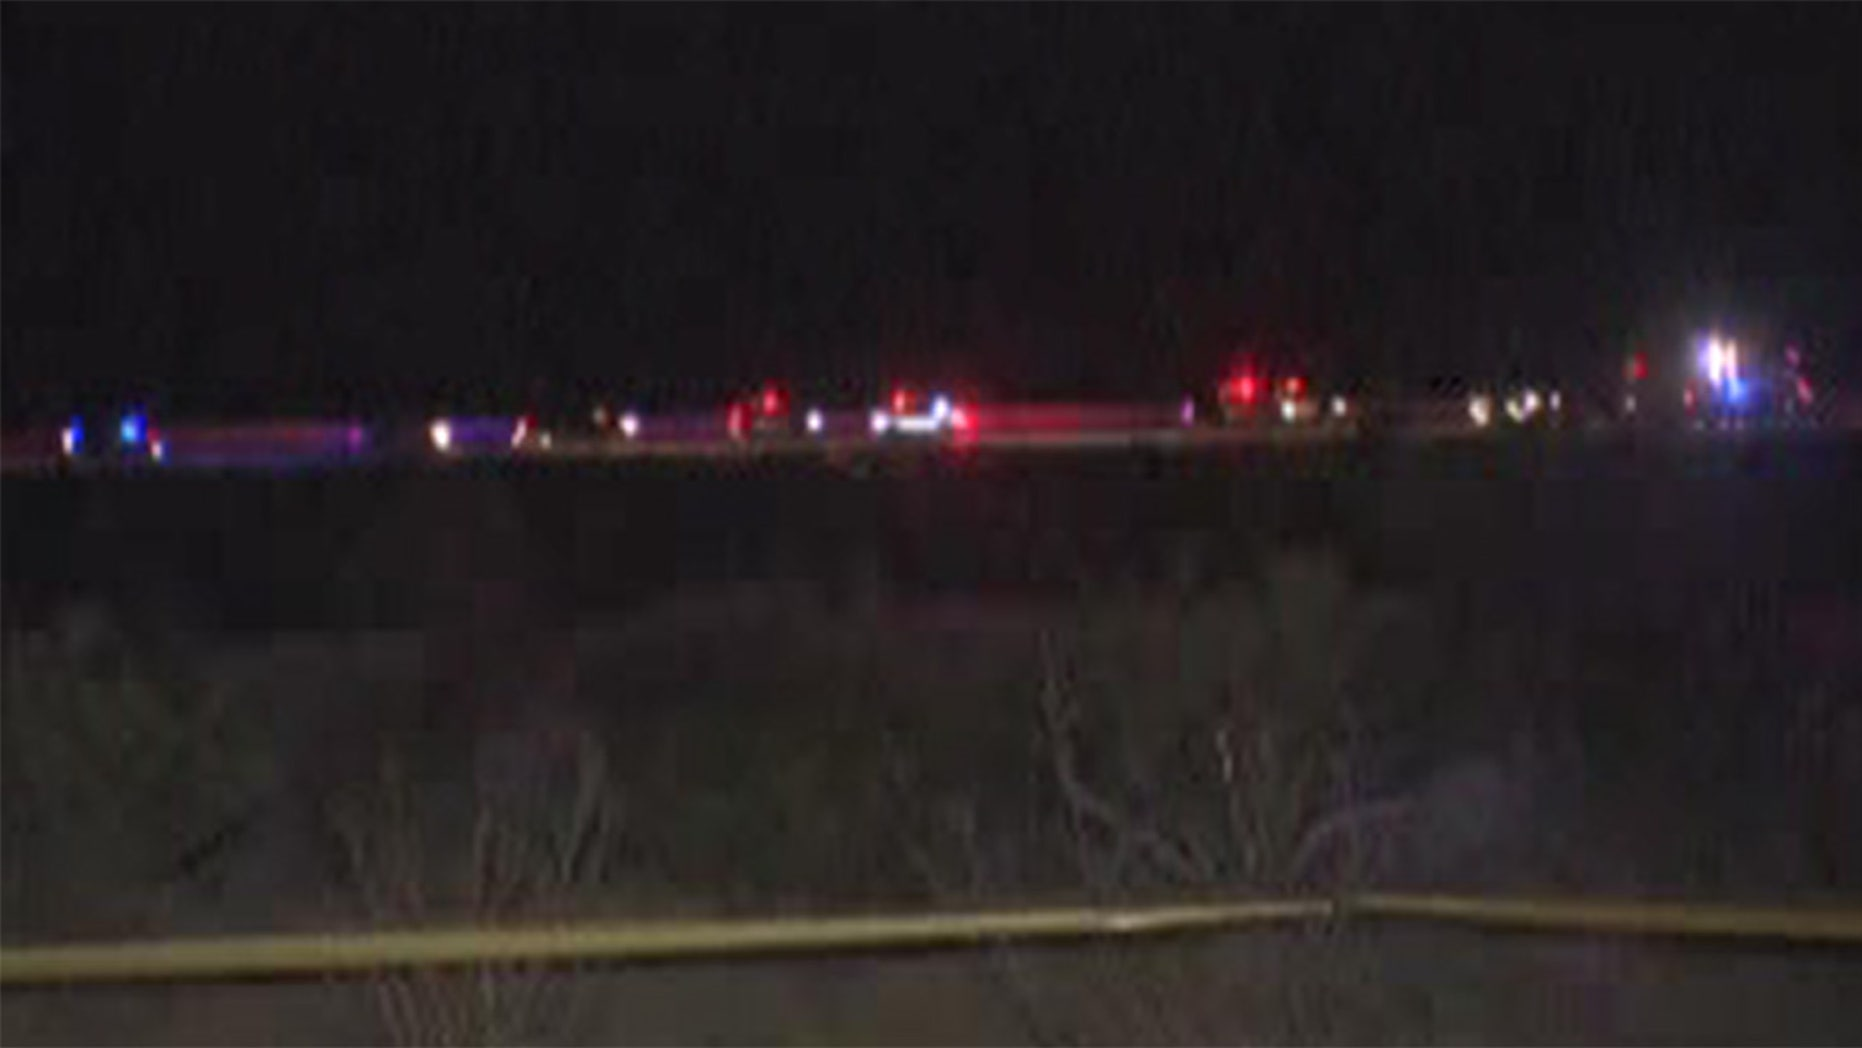 Authorities said they've confirmed one fatality in a small plane crash south of Las Vegas.